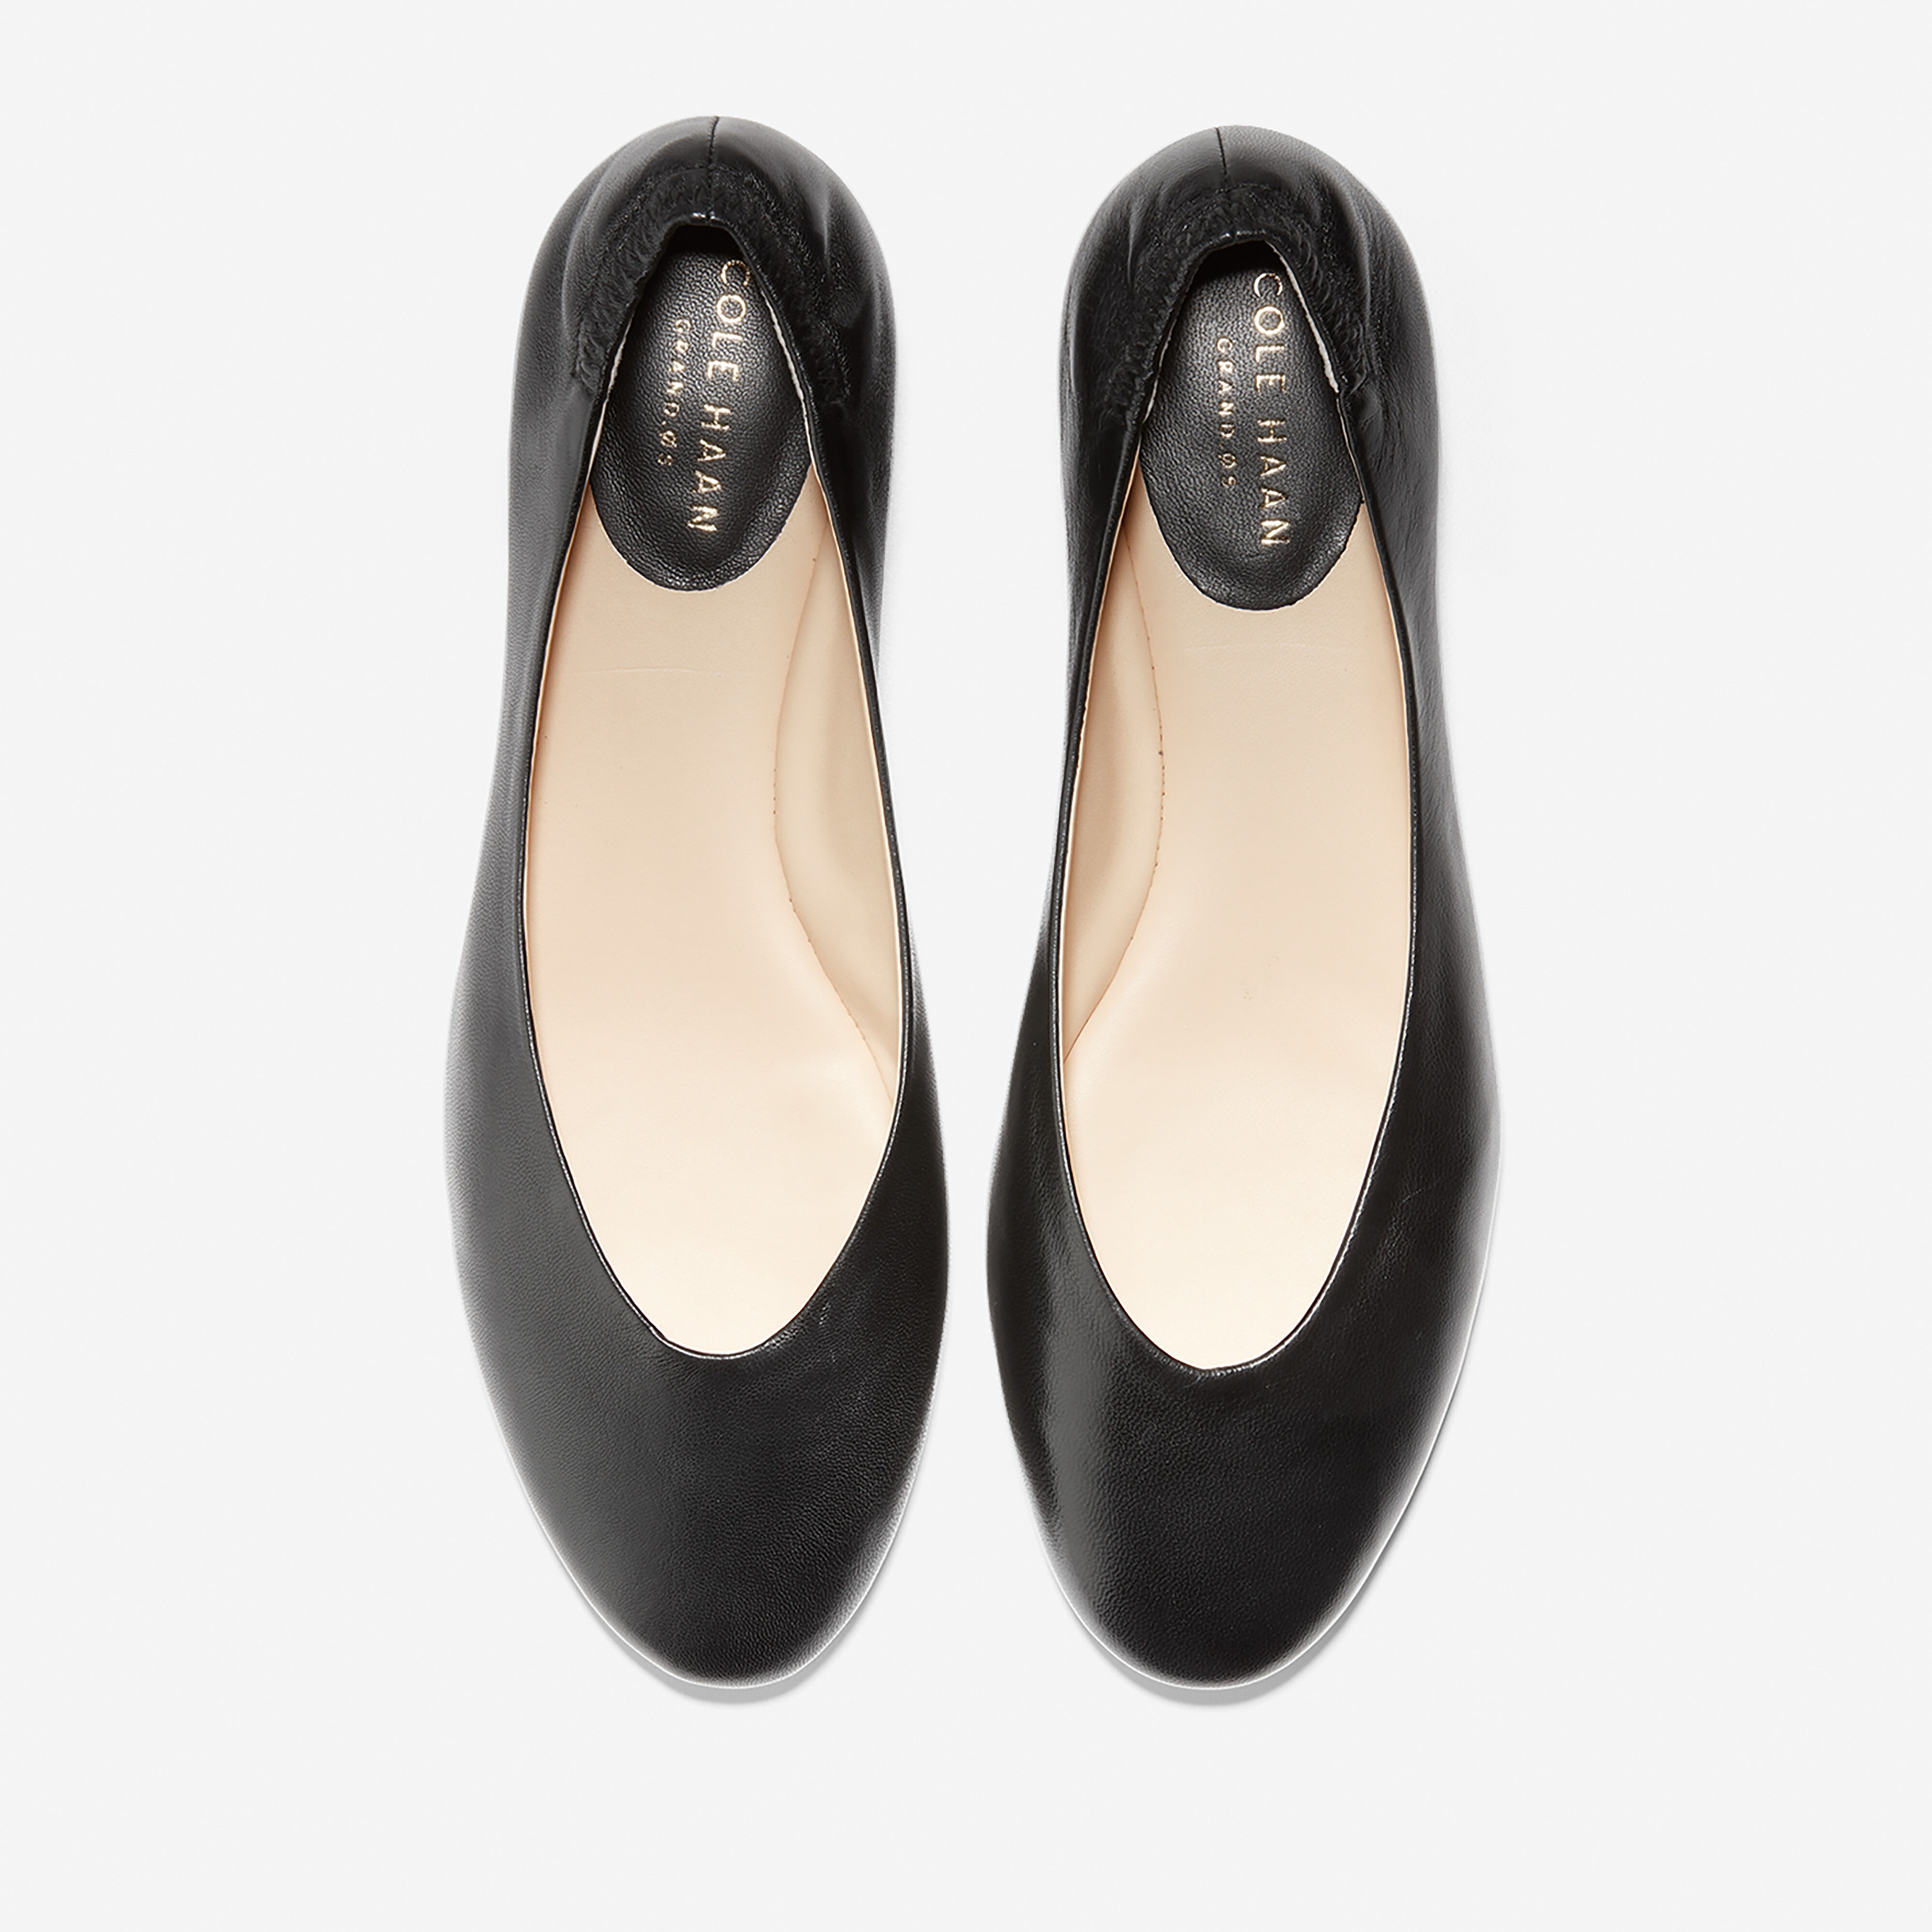 Kaia Ballet Flat in Black Leather